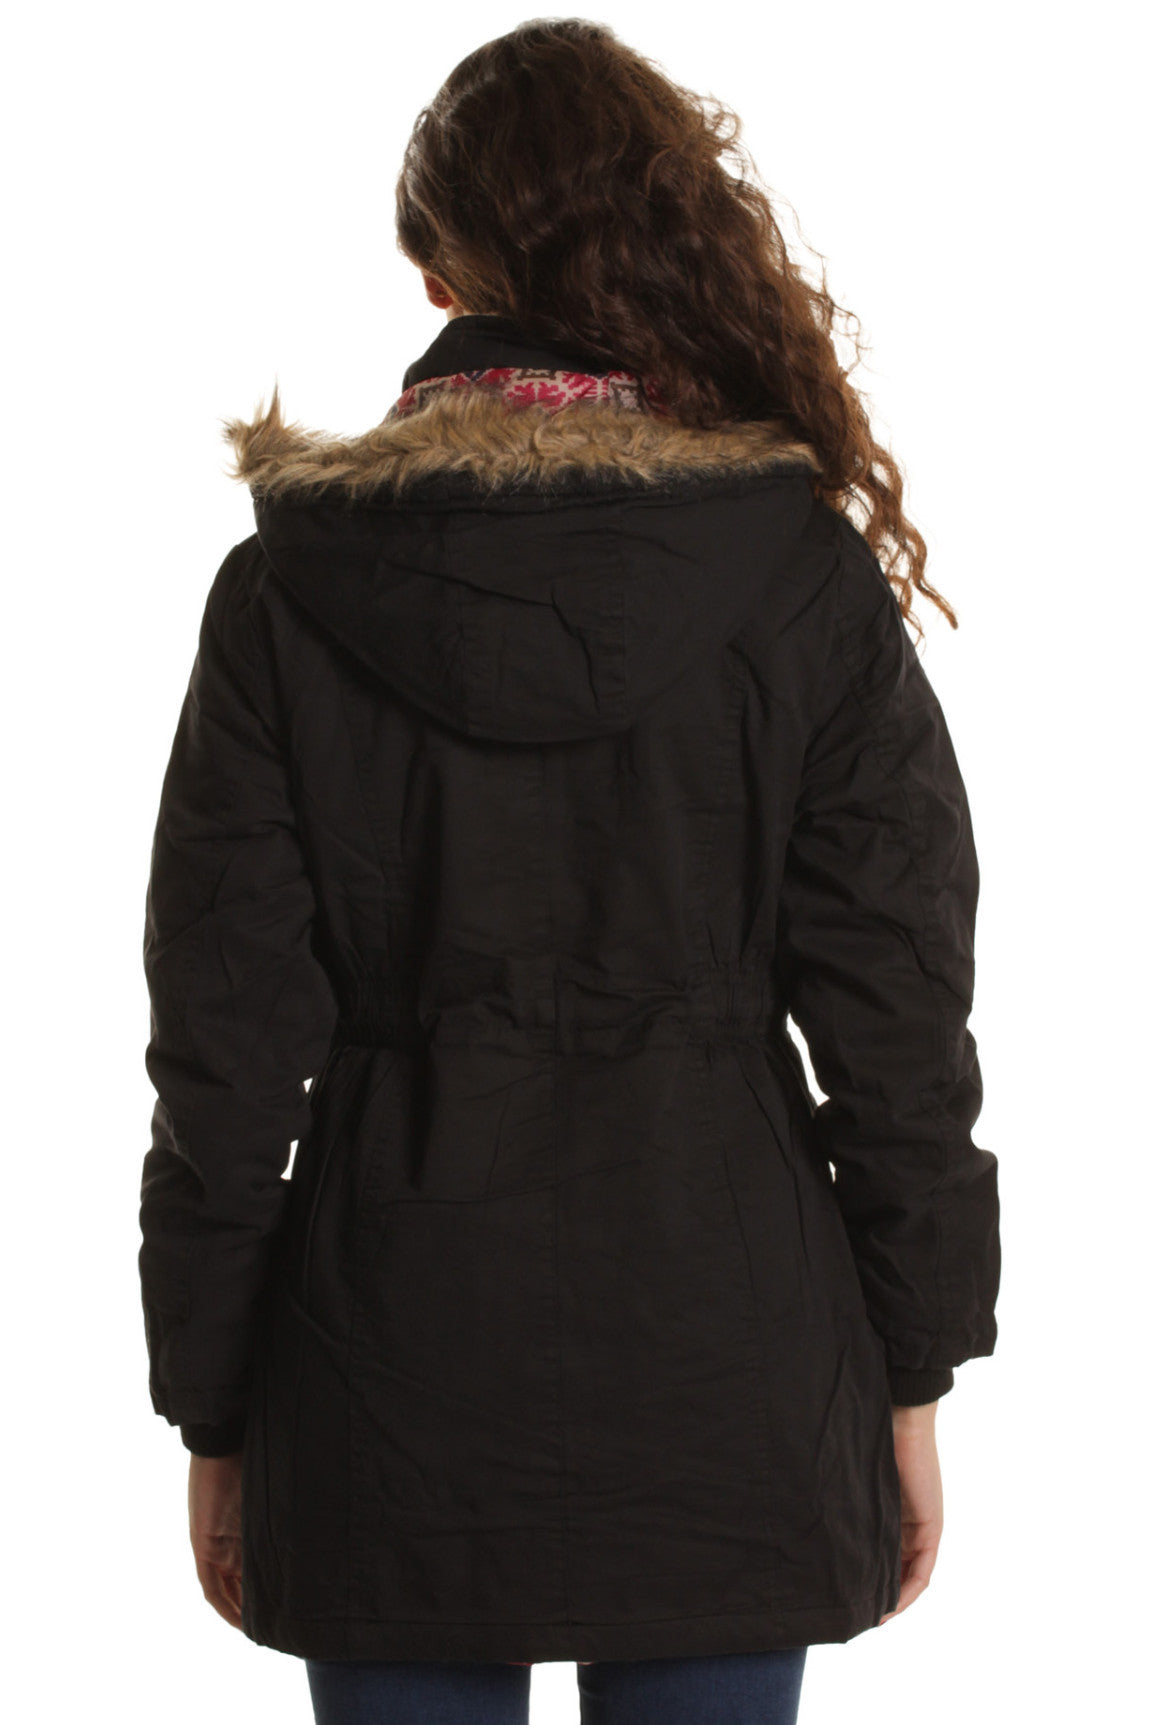 Black Fur Lined Parka with Drawstring Waist